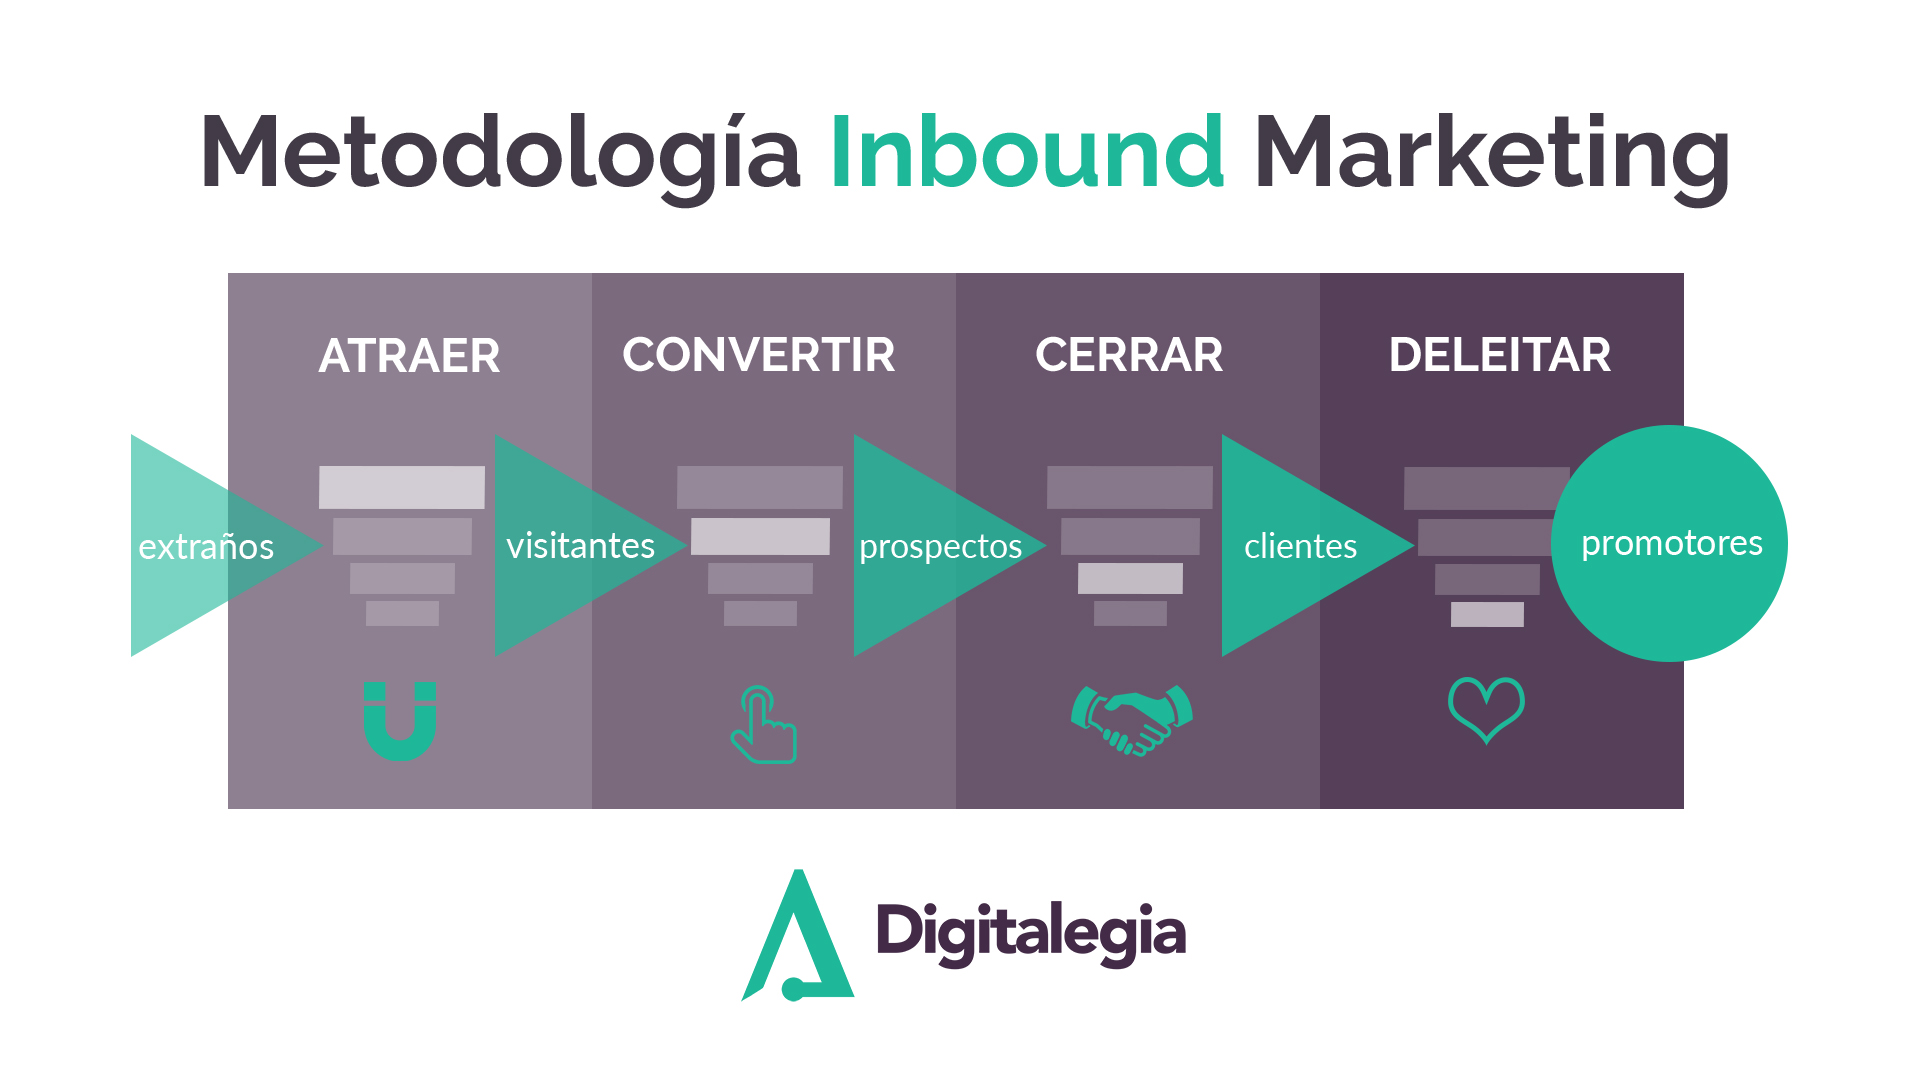 Metodologia-Inbound-Marketing-Digitalegia